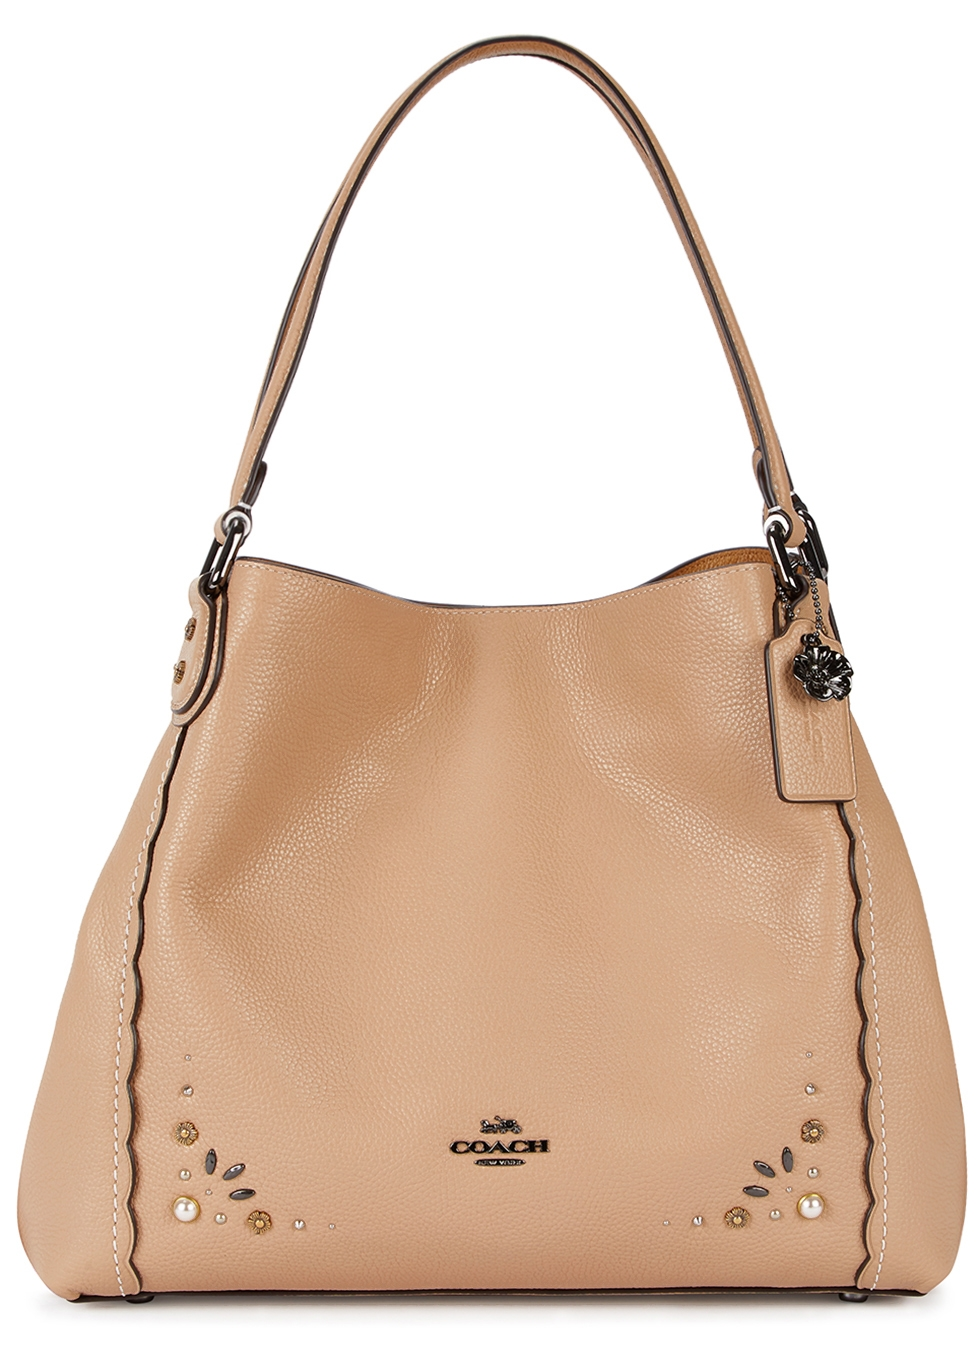 EDIE 31 ALMOND EMBELLISHED LEATHER TOTE